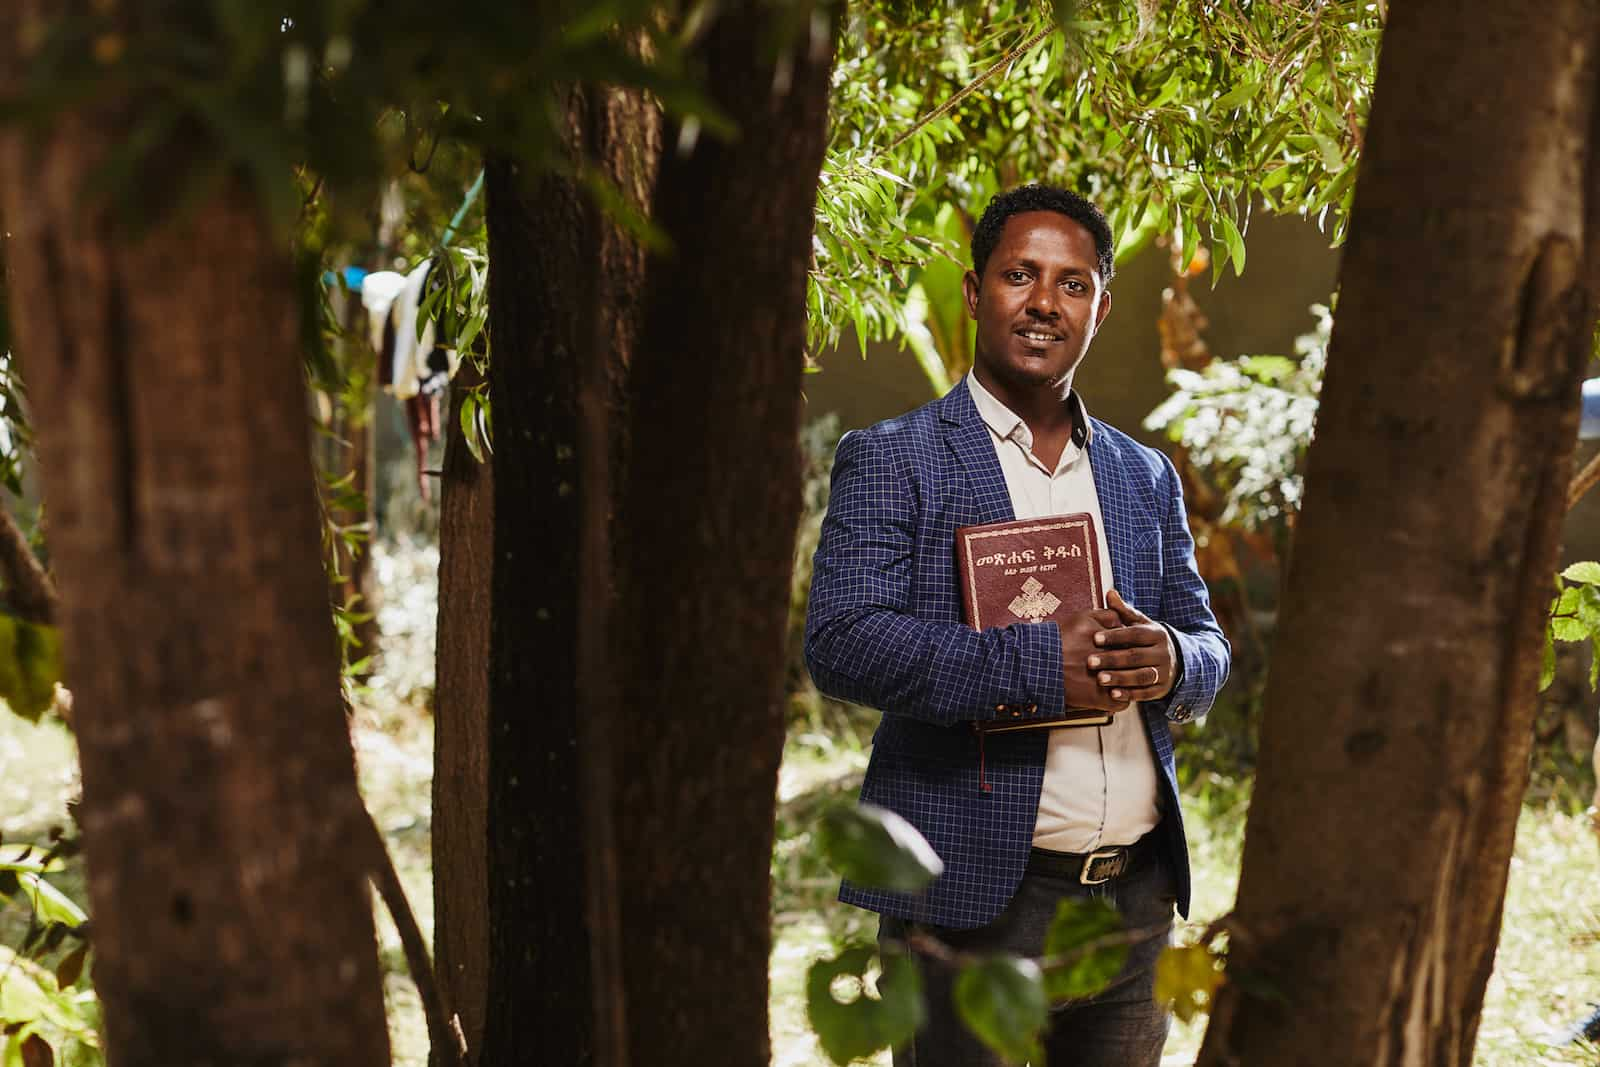 A man stands in a group of trees wearing a suit, holding a Bible and smiling into the camera.